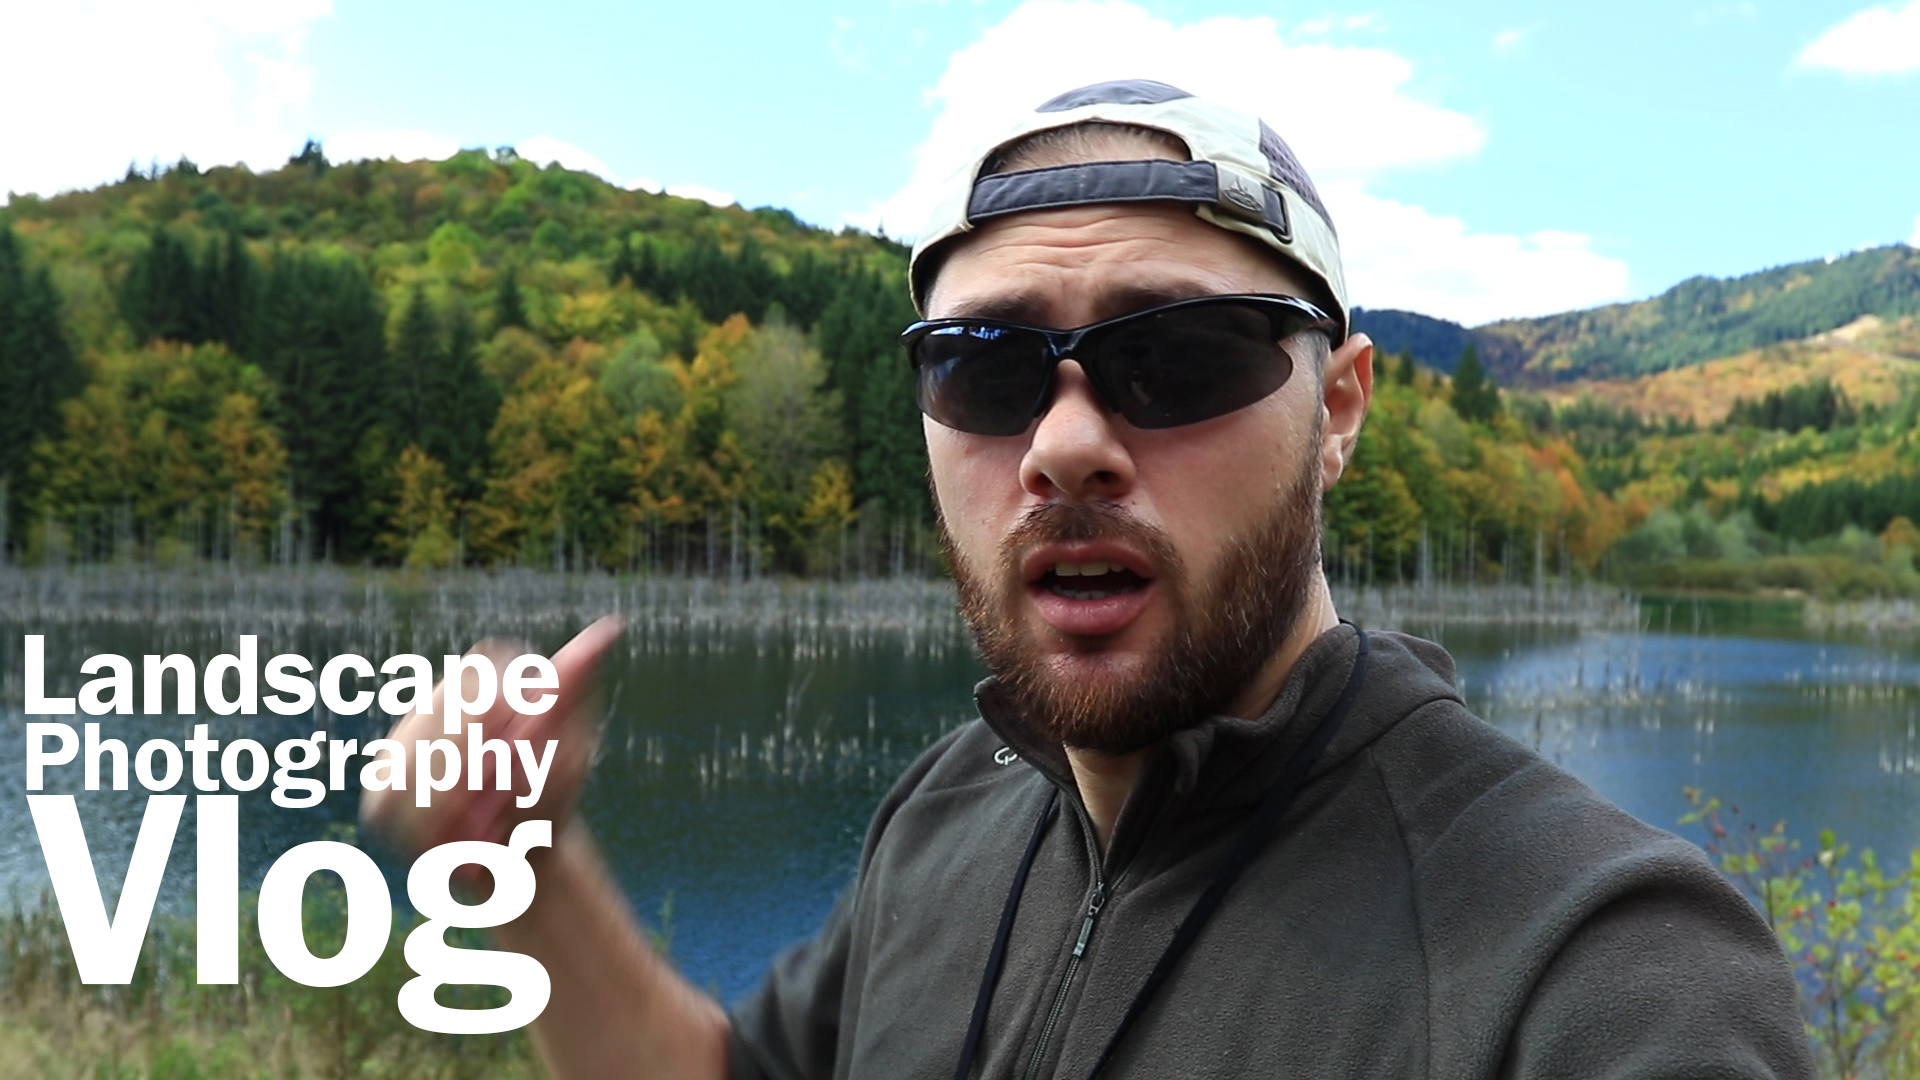 Landscape photography vlog – Going back to the lake for long exposures during the day